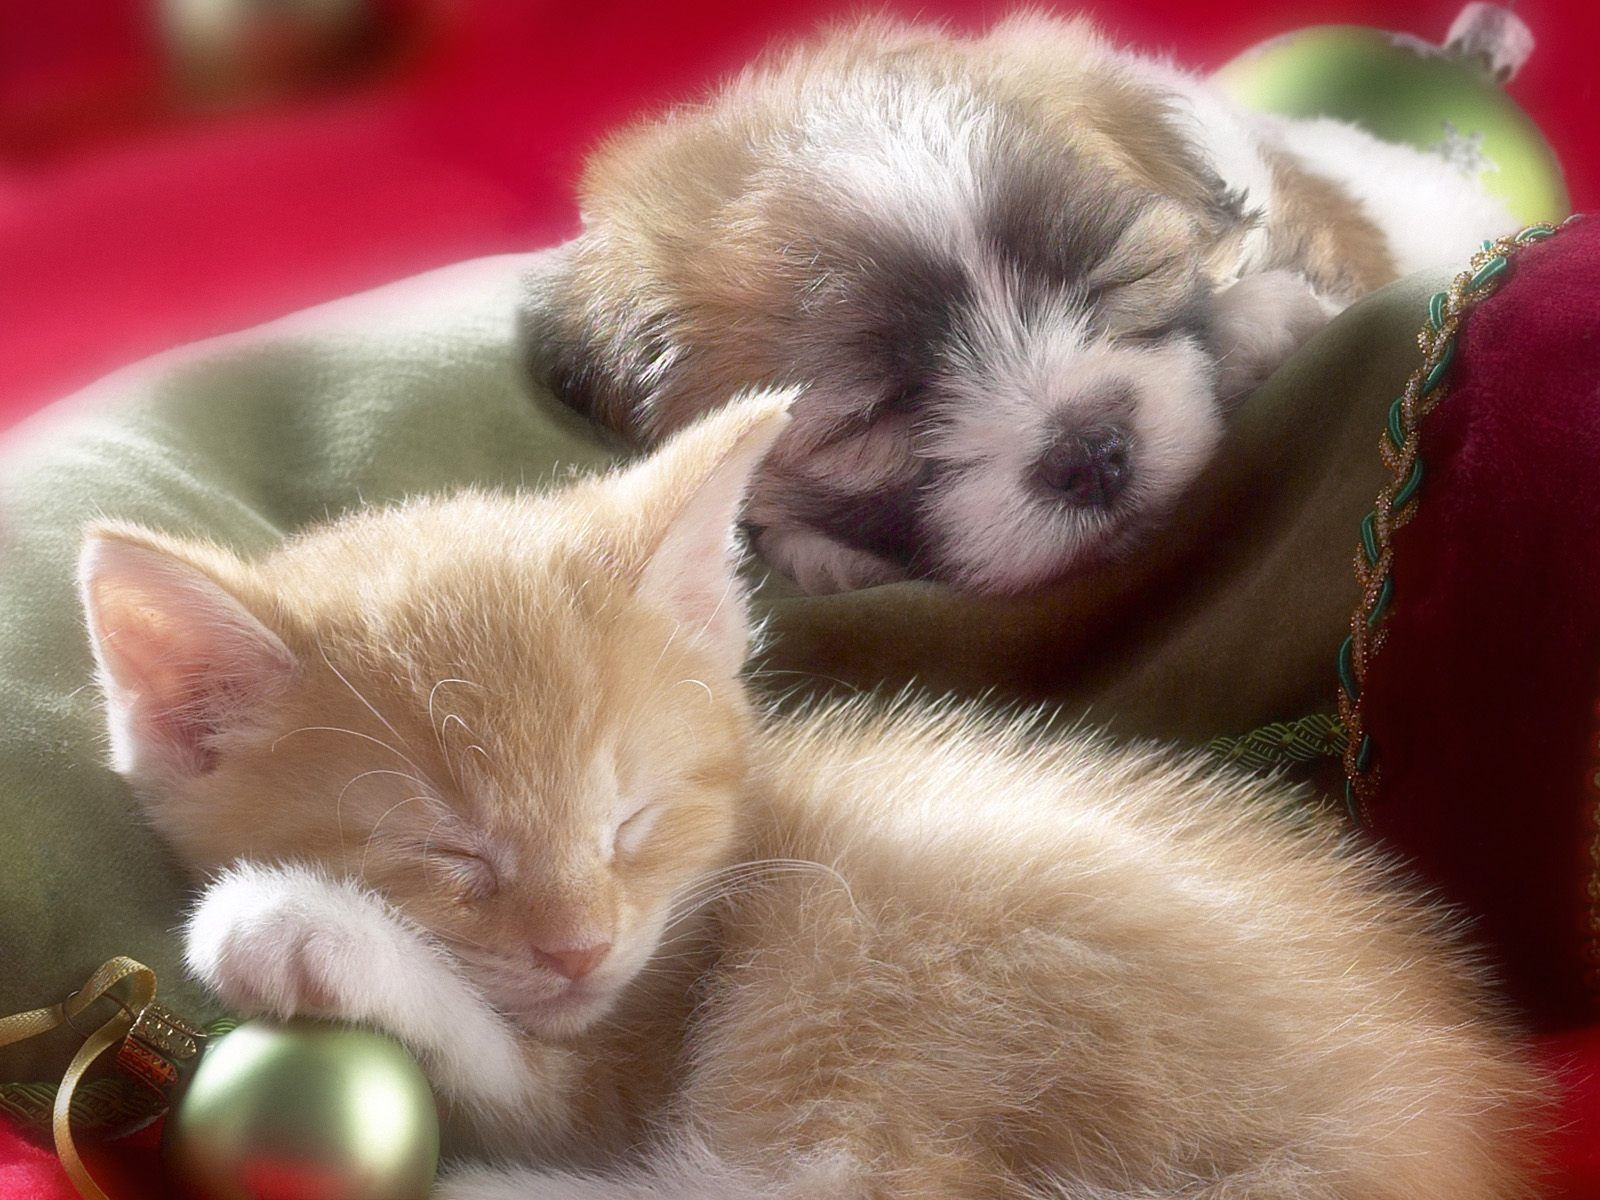 Christmas Puppy And Kitten Sleeping Wallpaper And Background Image